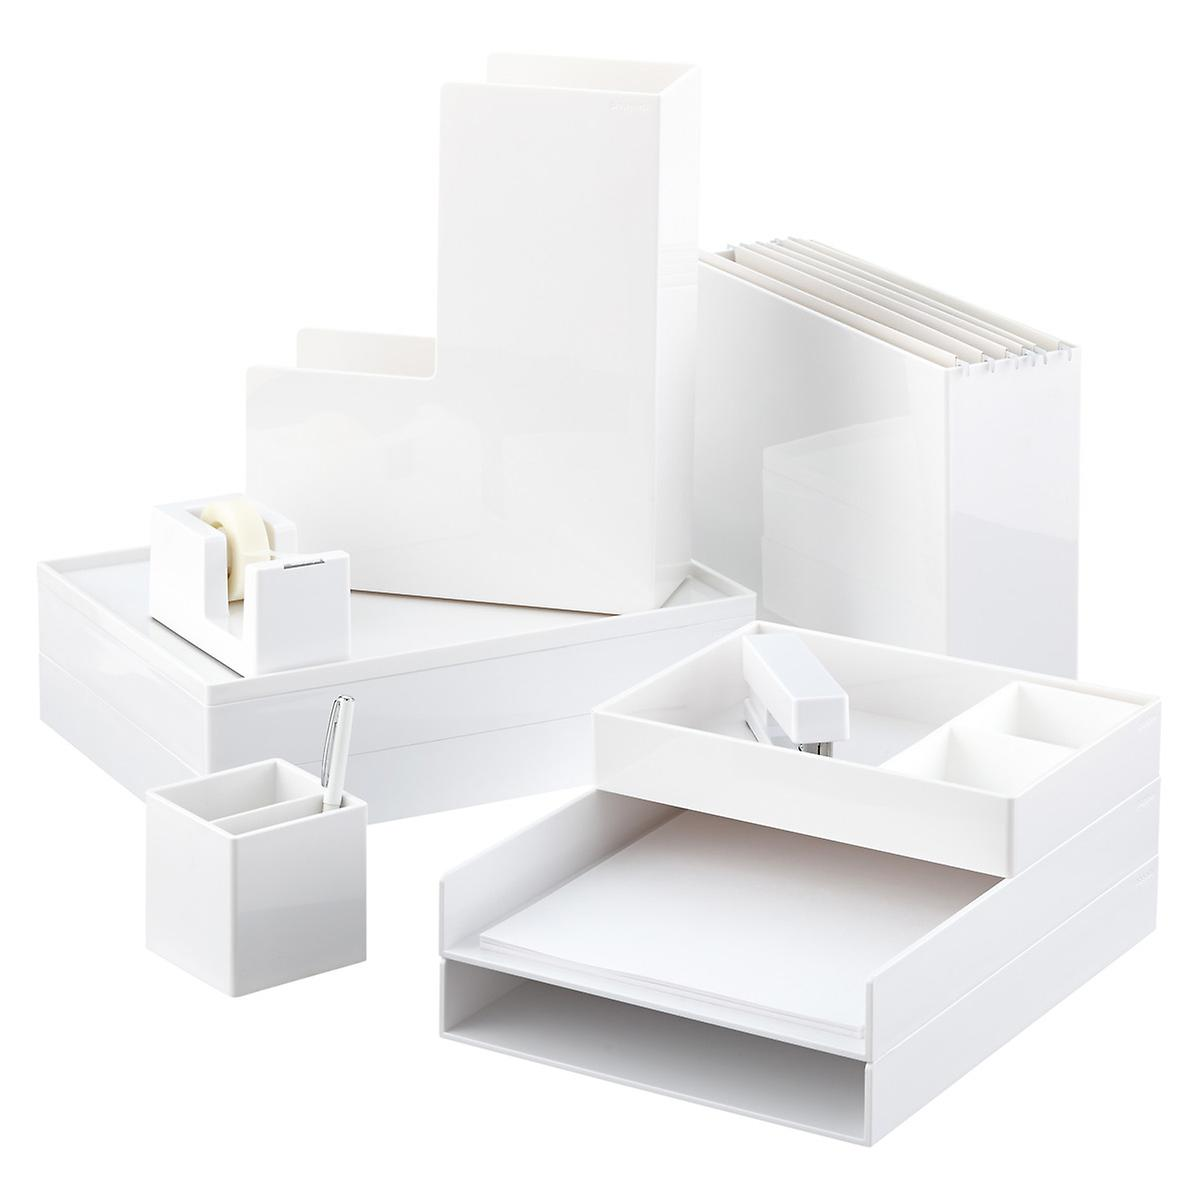 White Poppin Hanging File Box | The Container Store